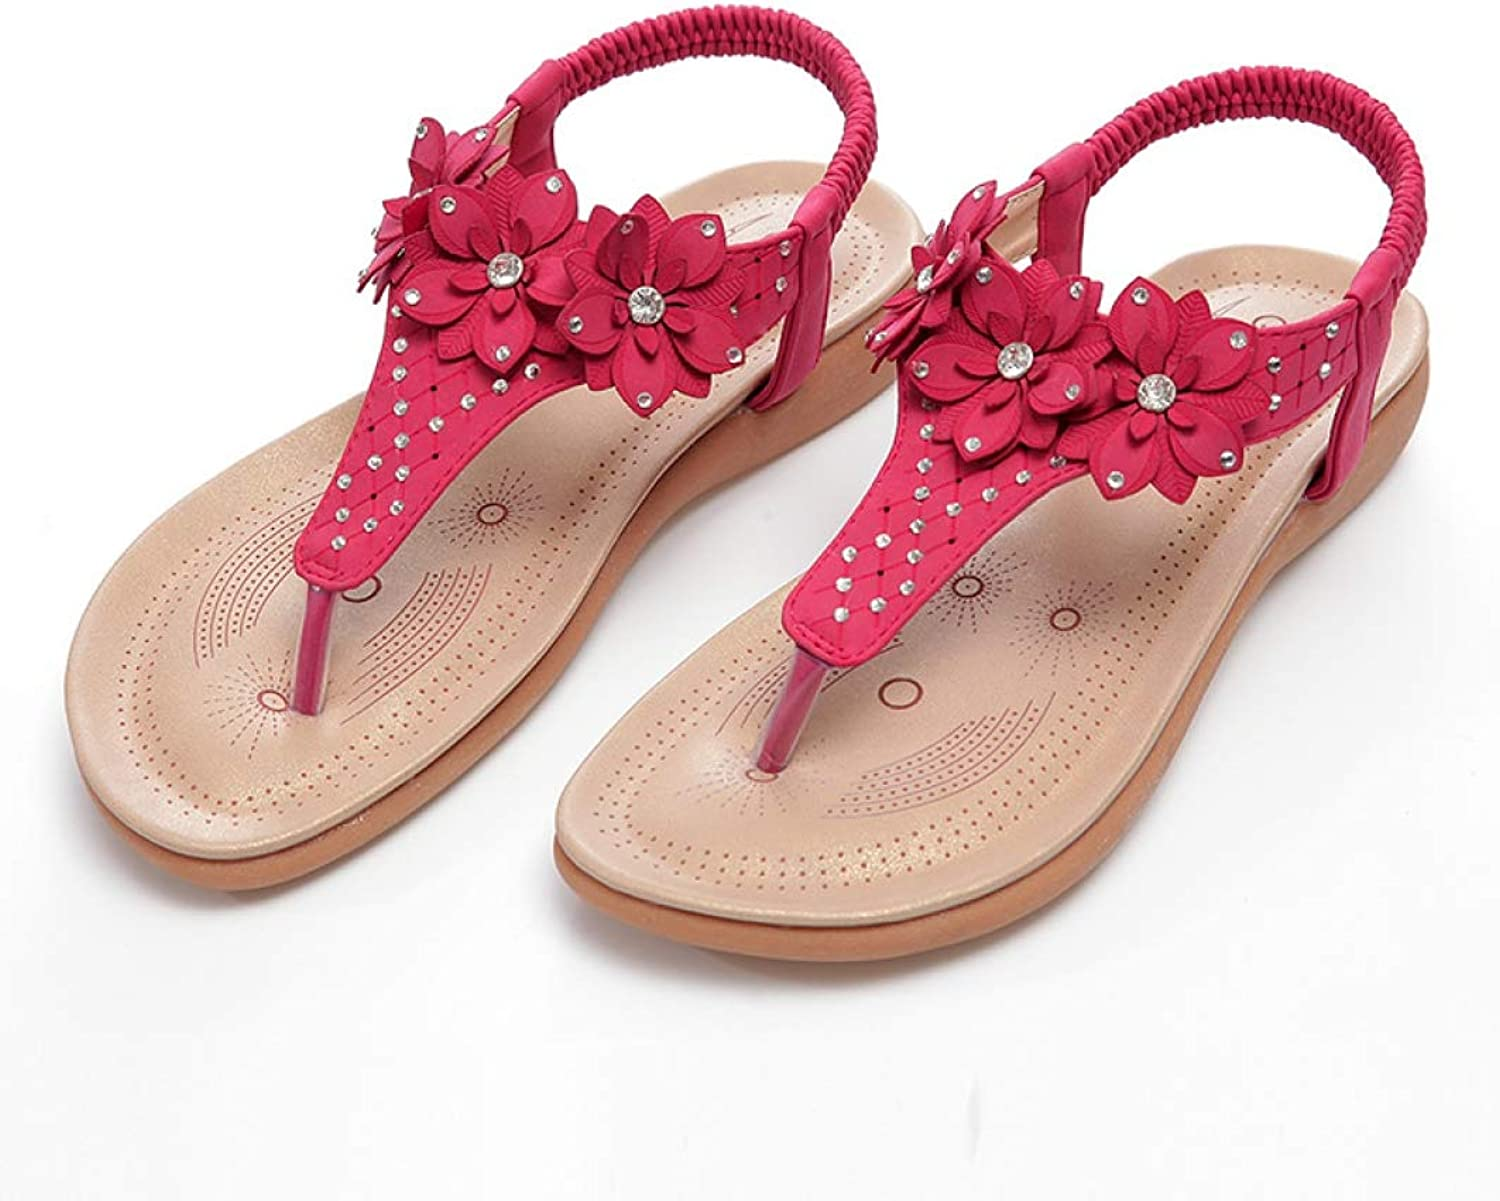 JOYBI Flat Flip Flop Sandals for Women Girls Clip Toe Dainty Rhinestone Flowers Lightweight Soft Comfy Sandals